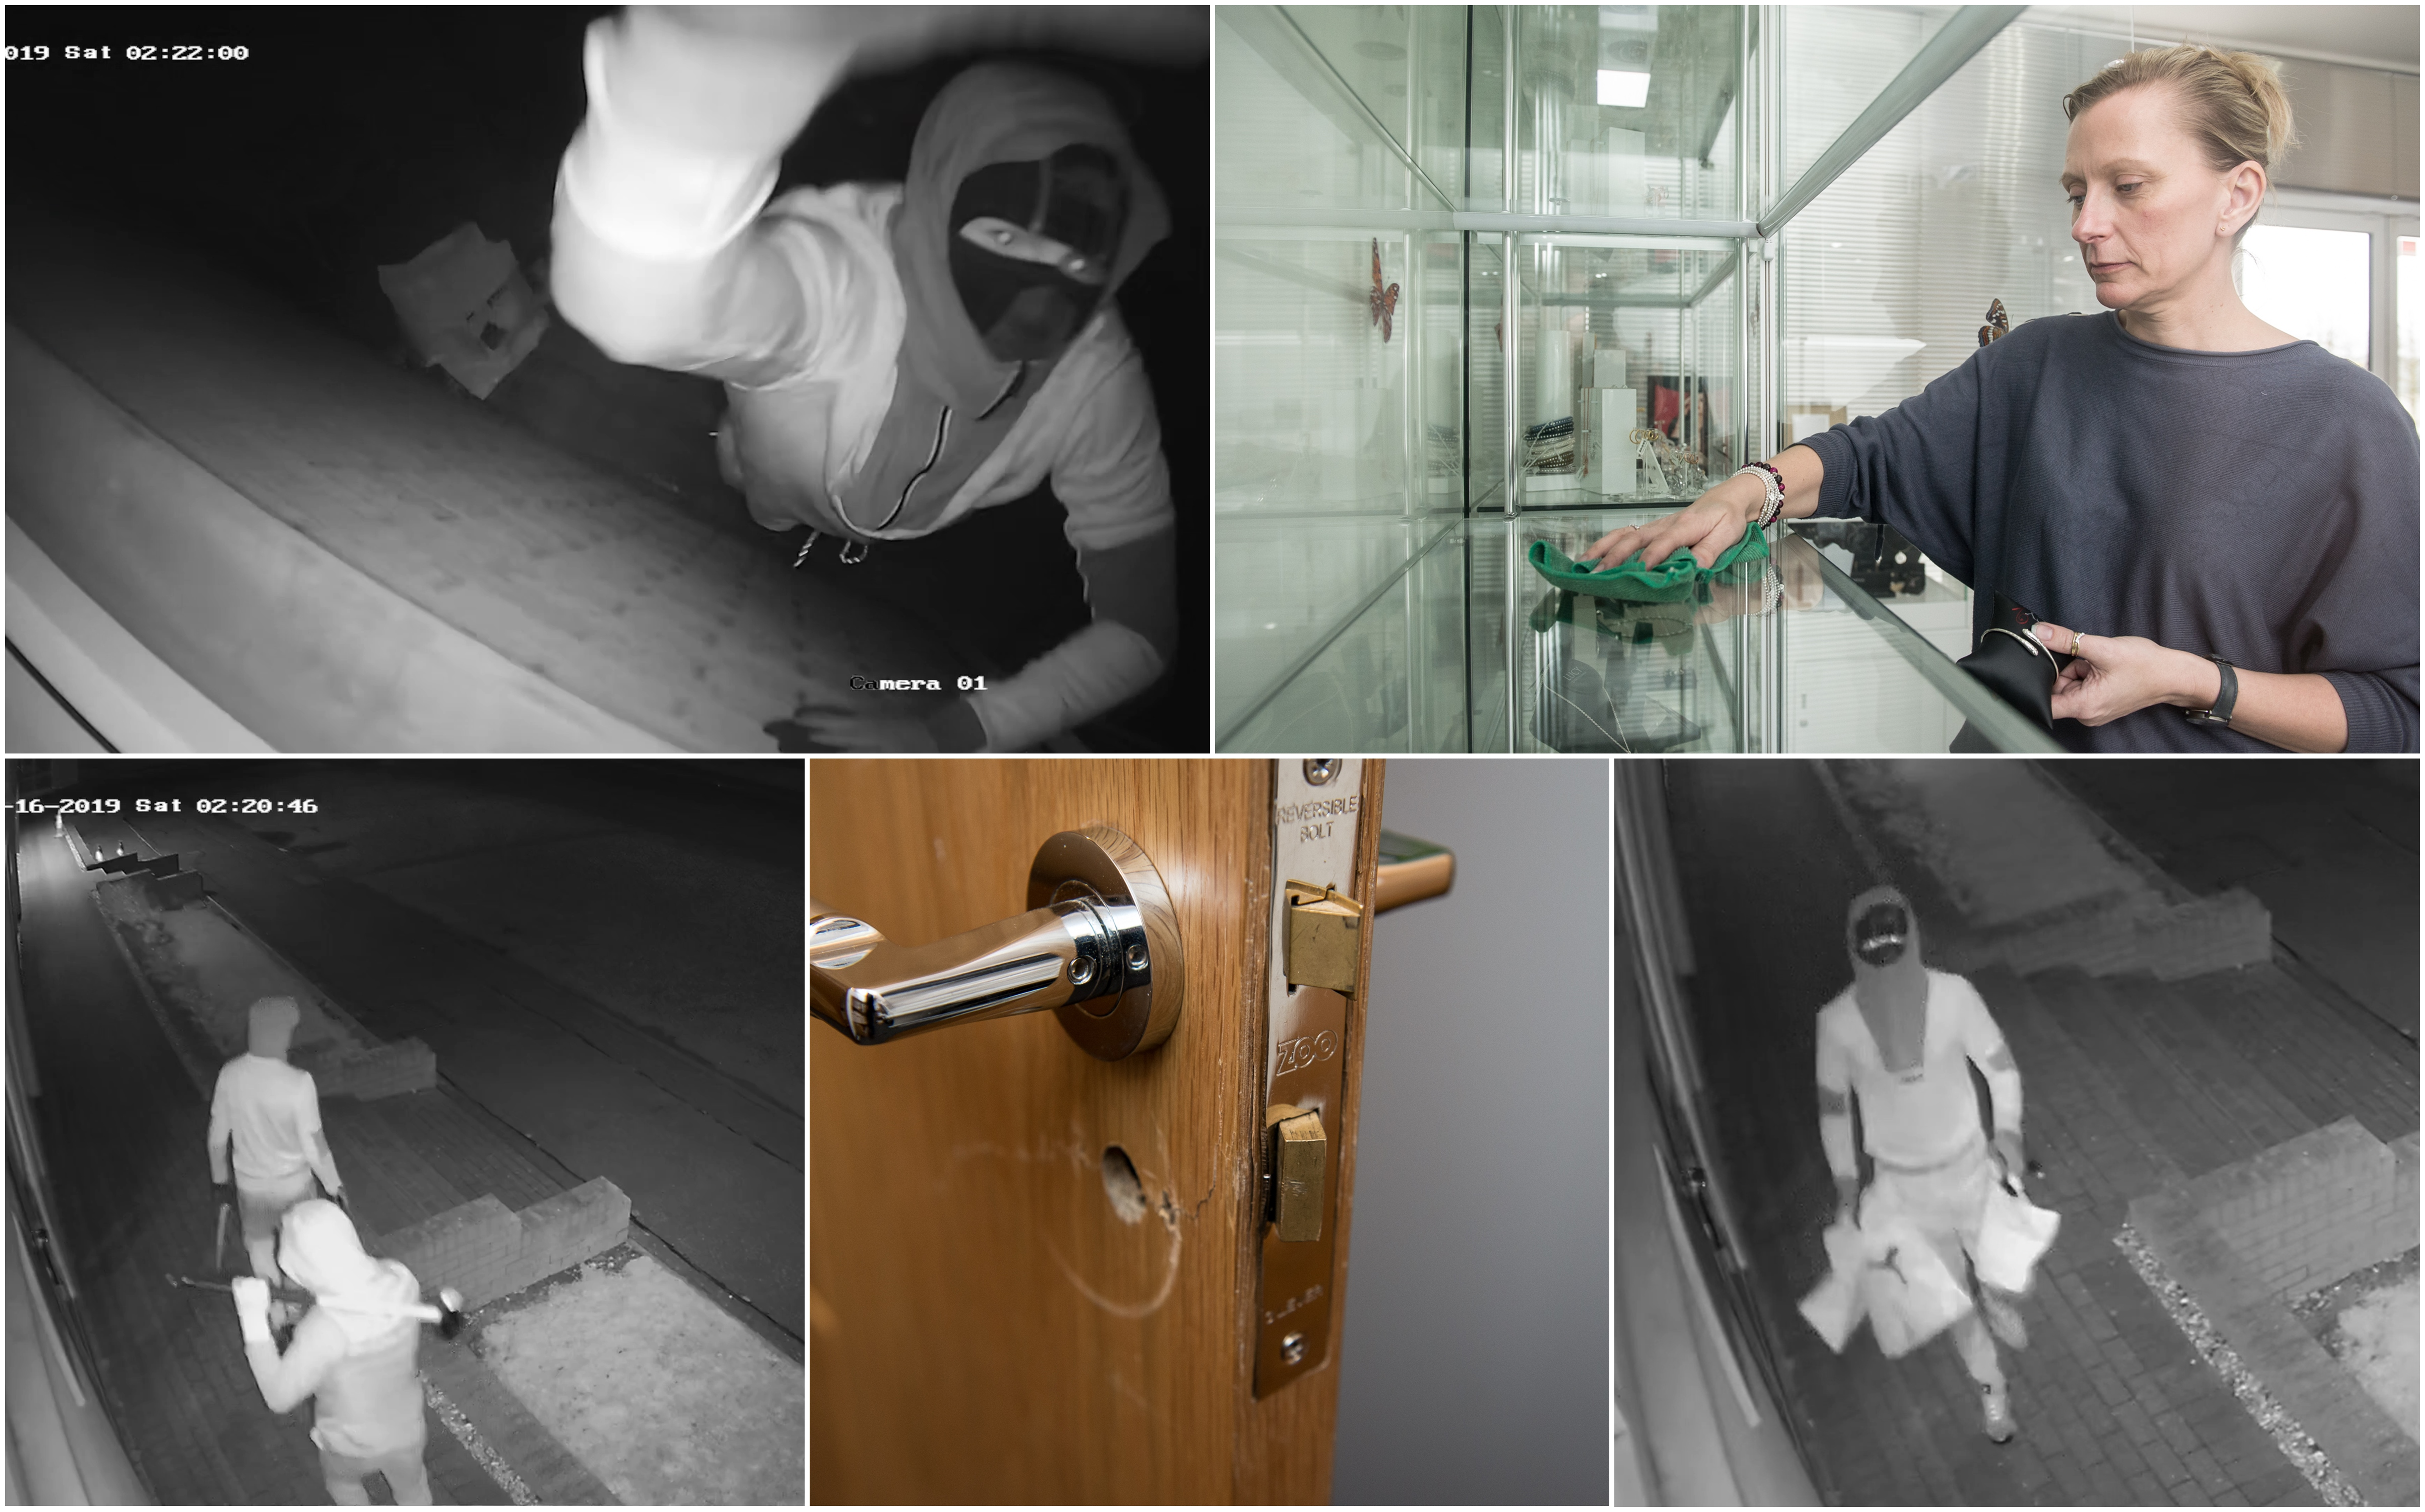 CCTV stills, the damage caused and Jo-Ann Kinnear clears up following the riad